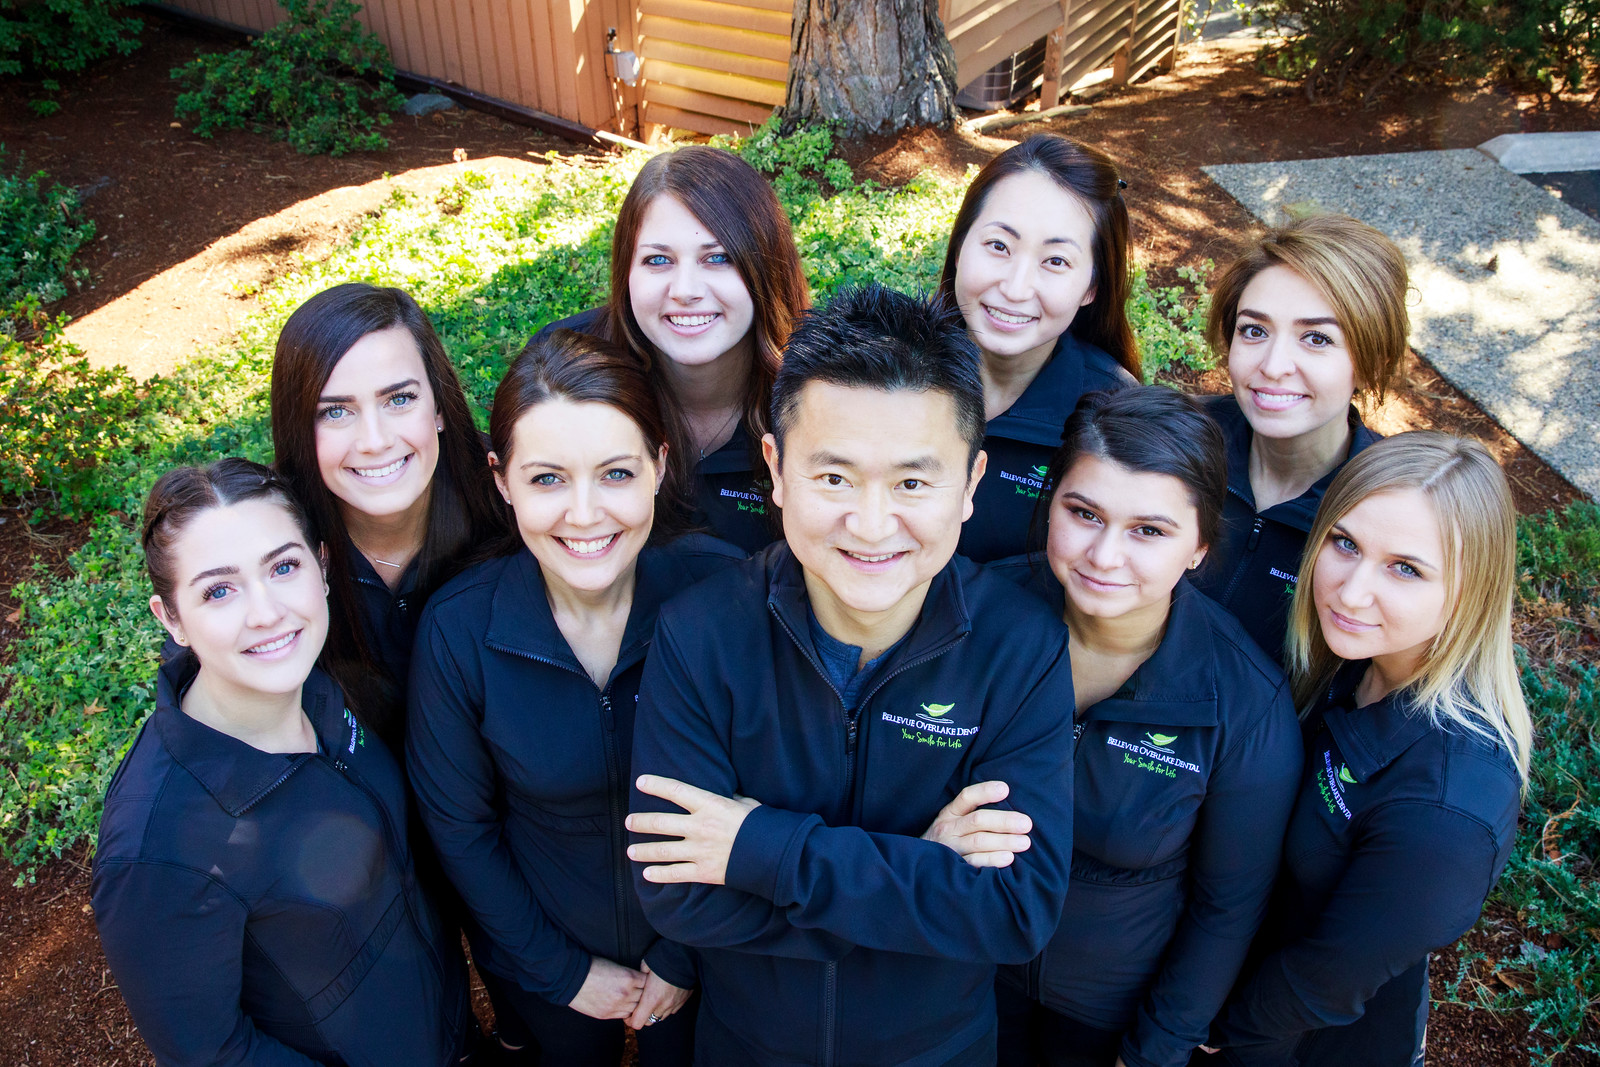 Bellevue Overlake Dental reviews | 2020 116th Avenue NE - Bellevue WA